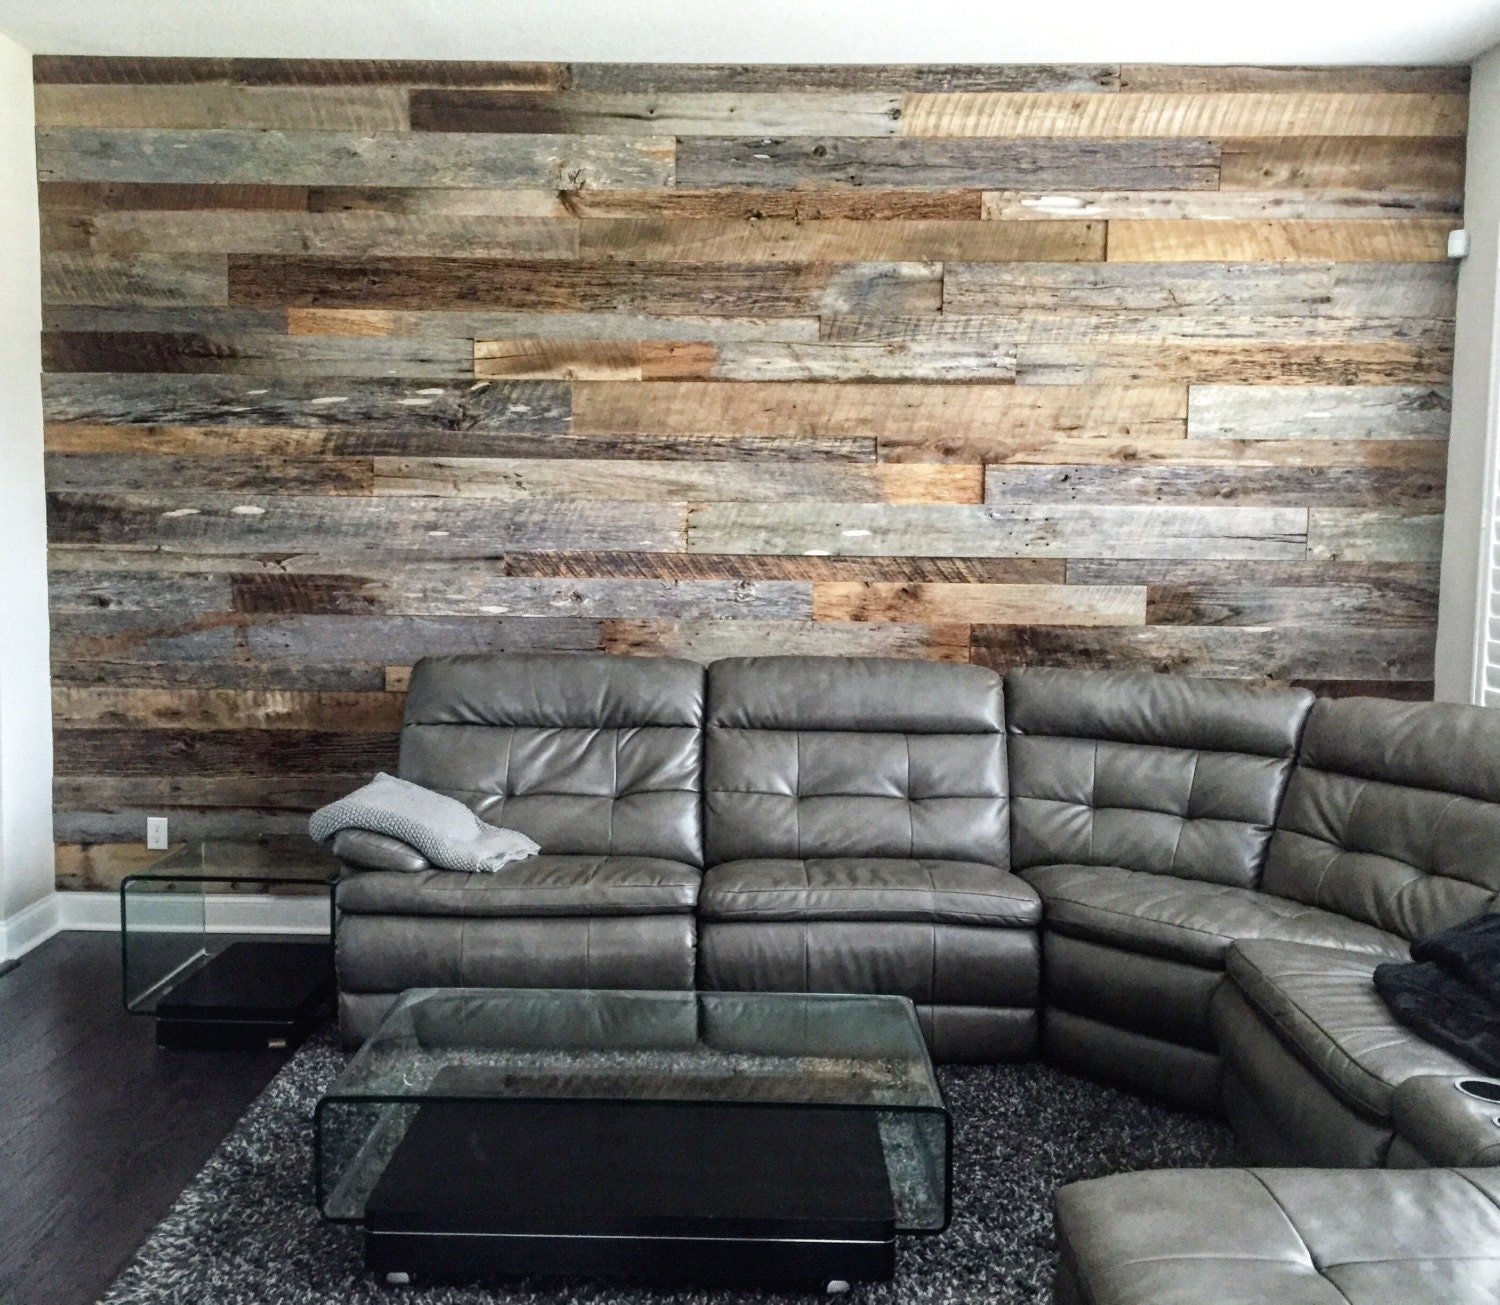 Reclaimed Wood Wall Accent Kits: reclaimed woods